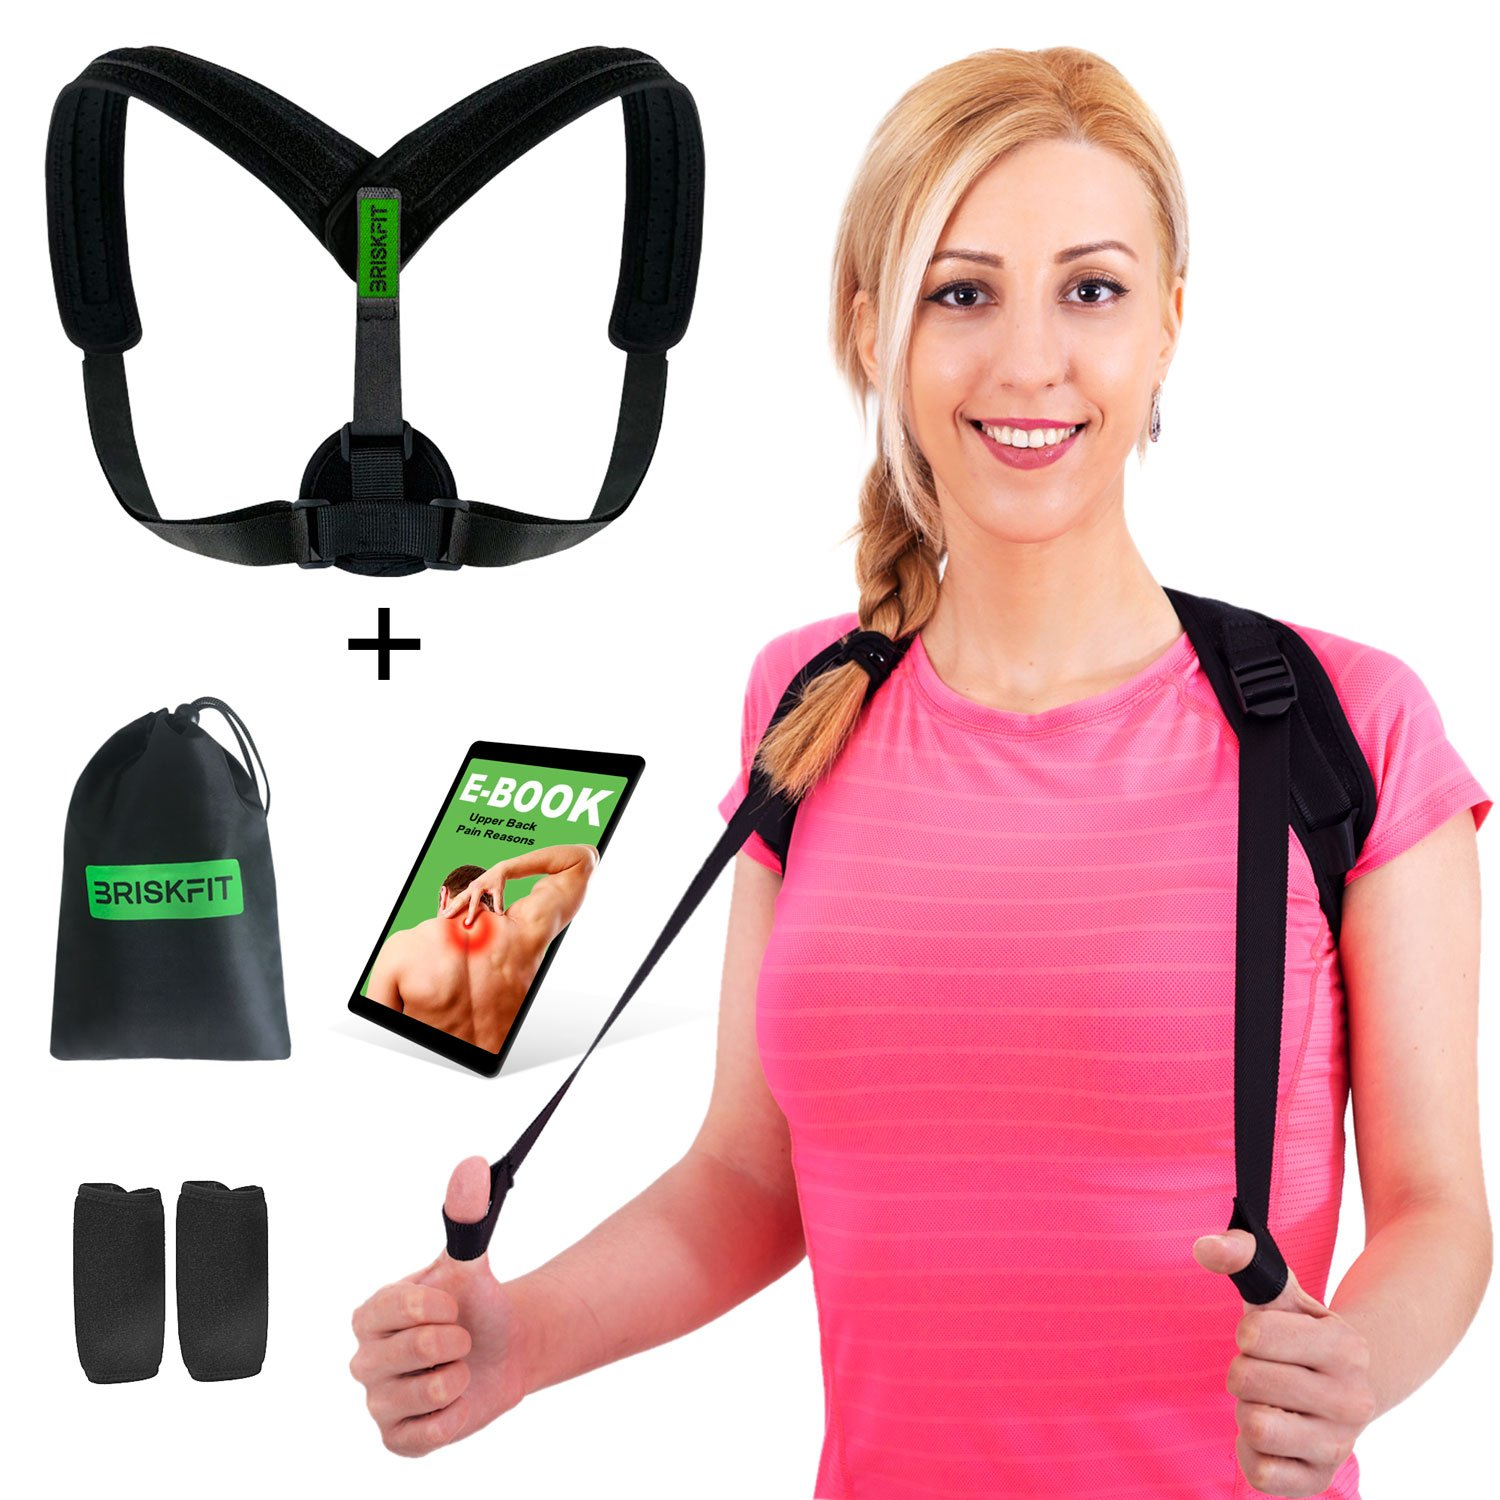 Back Posture Corrector for Women Men & Kids - Adjustable Posture Brace for Hunch Back - Clavicle Support for Upper Back Pain Relief + Carry Bag